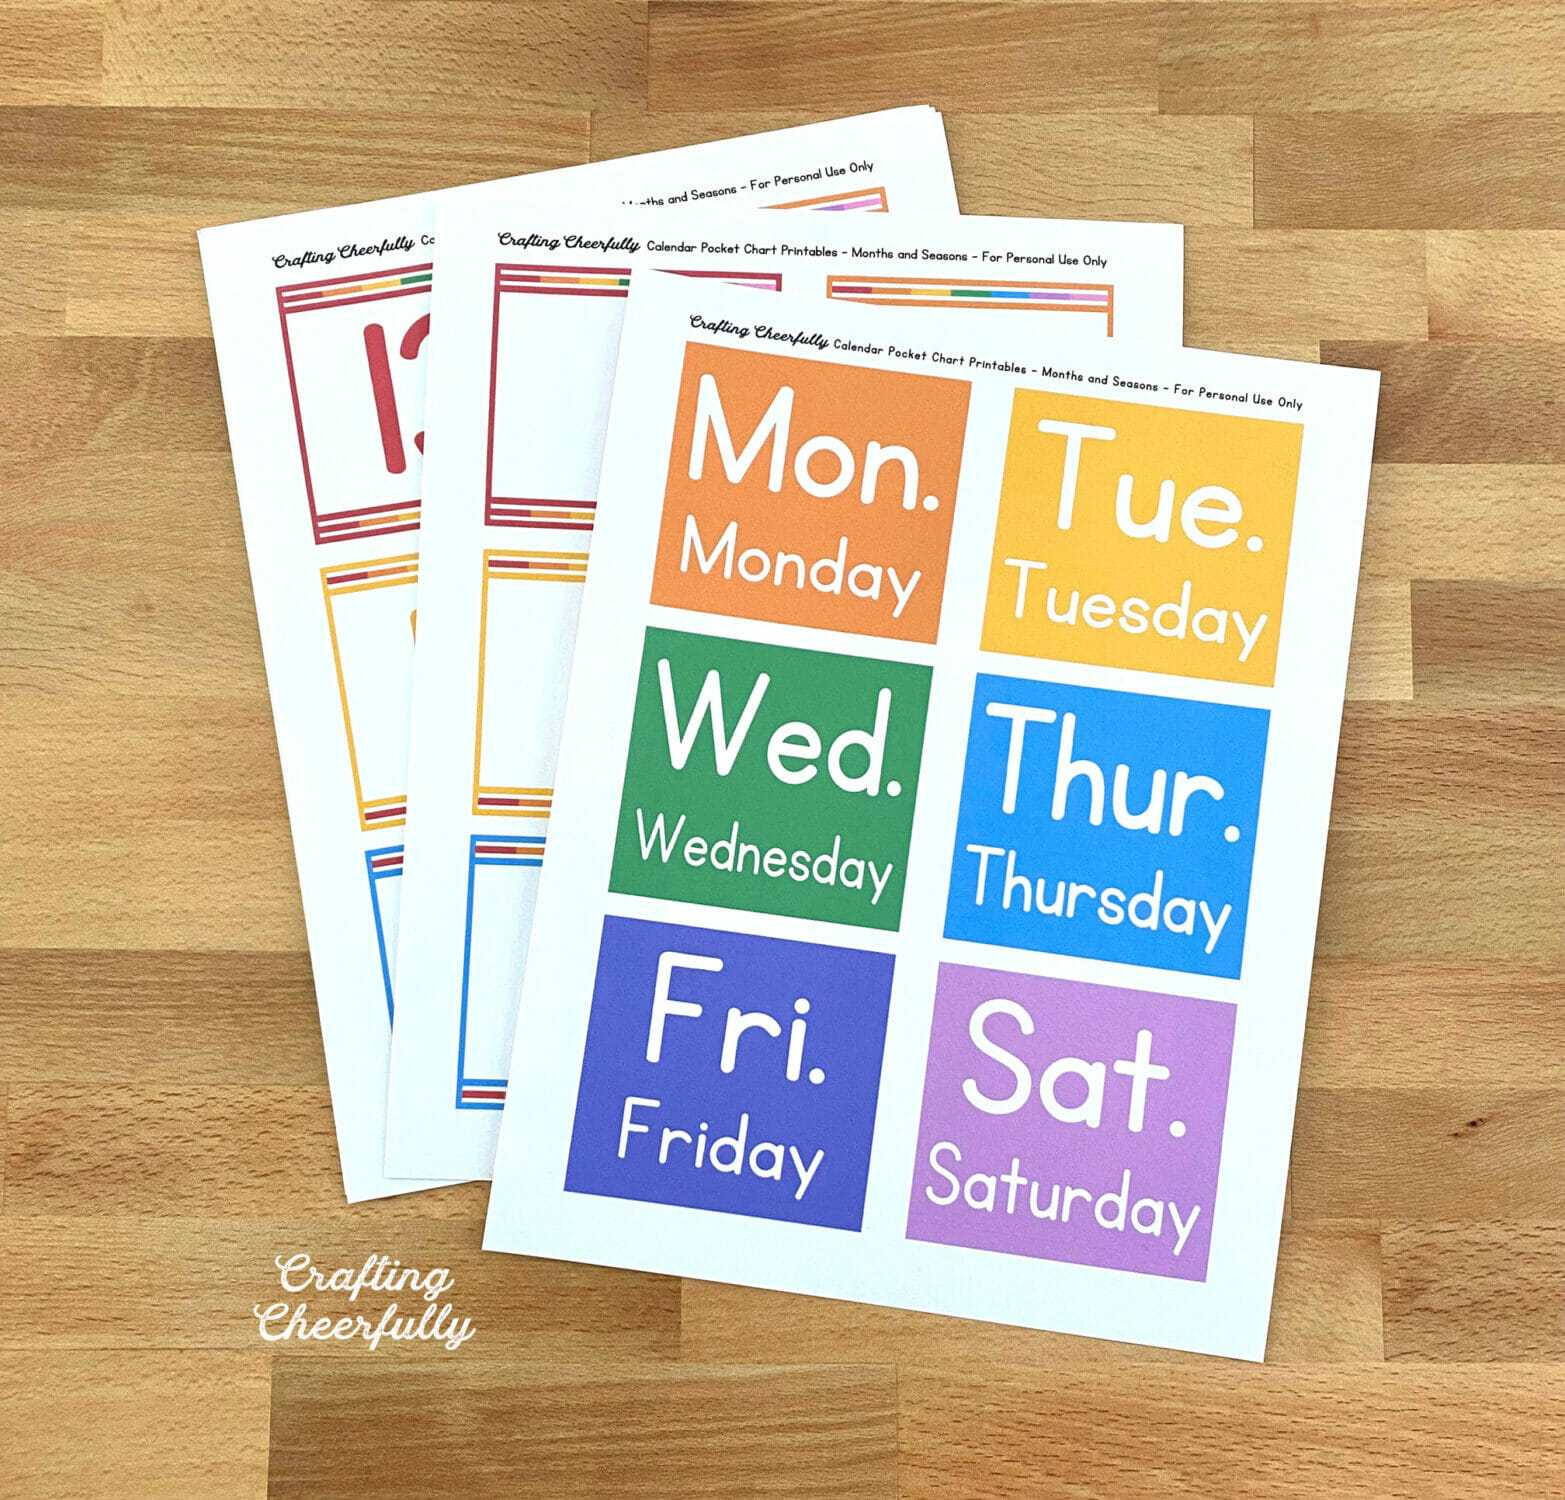 Pocket chart calendar printables showing the days of the week.